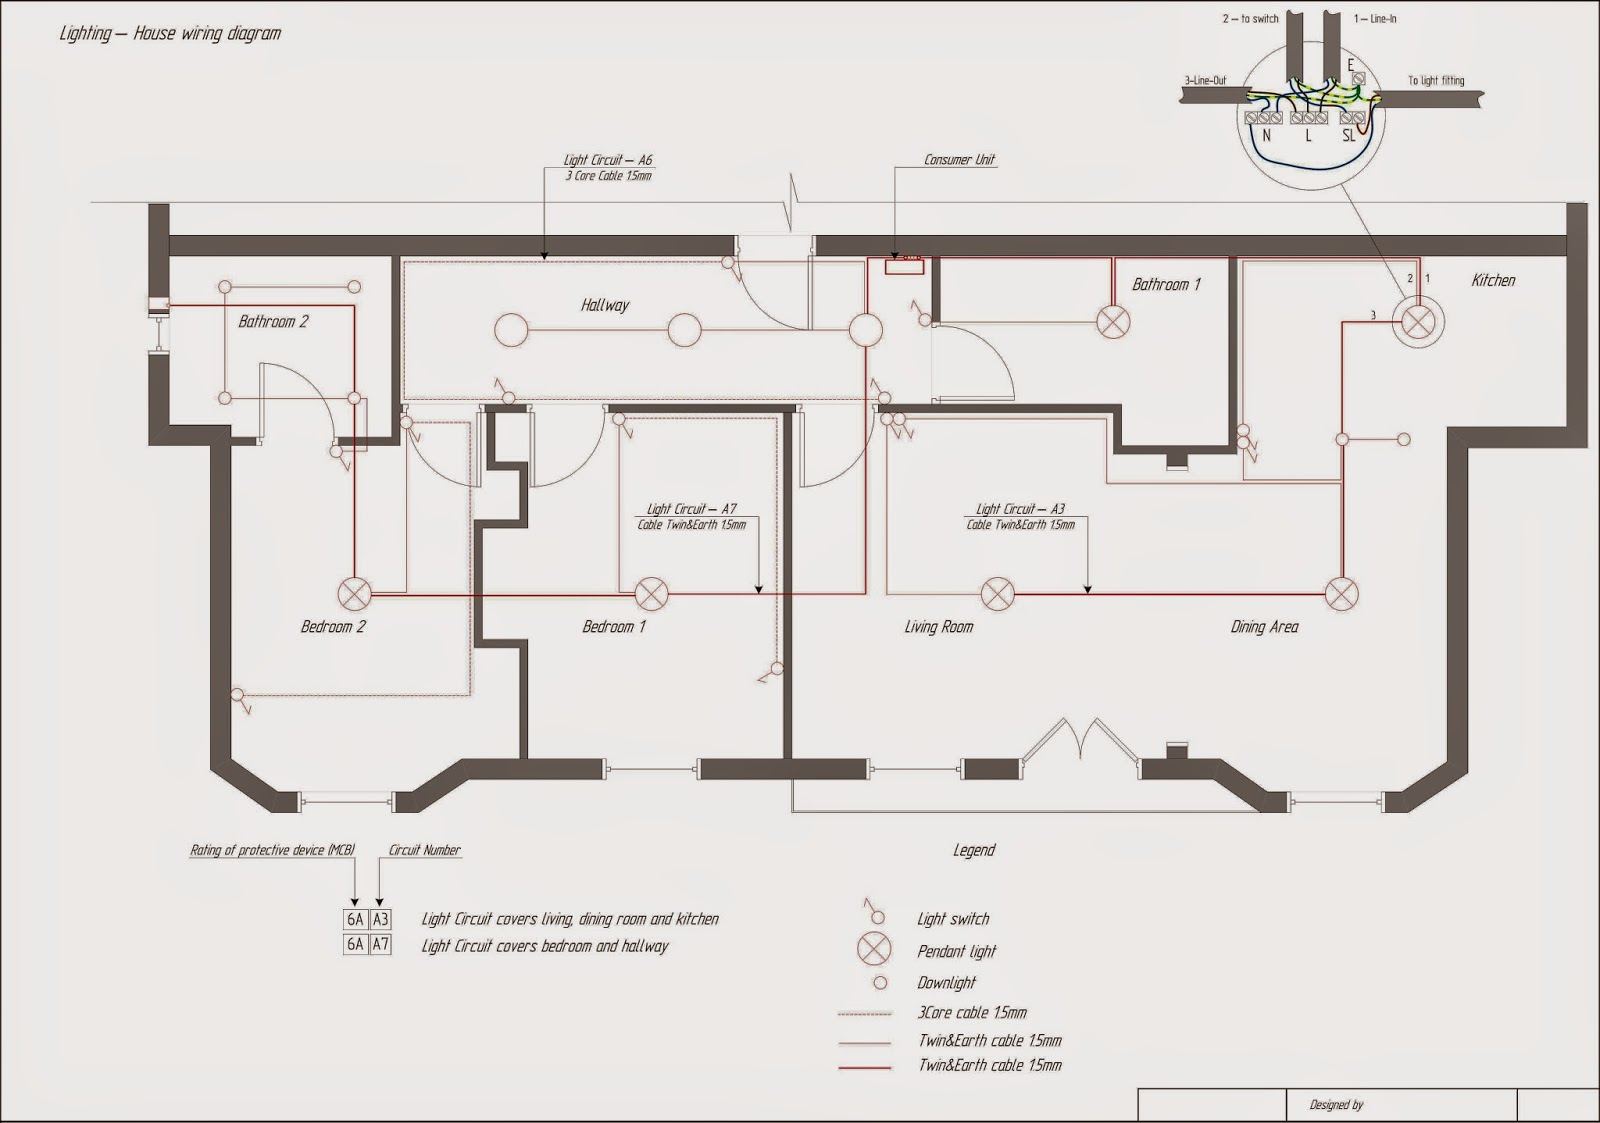 Wiring Diagram Of House Diagrams Home Air Conditioner Free Picture Ex Les Get Image About For Plug To Meter Box